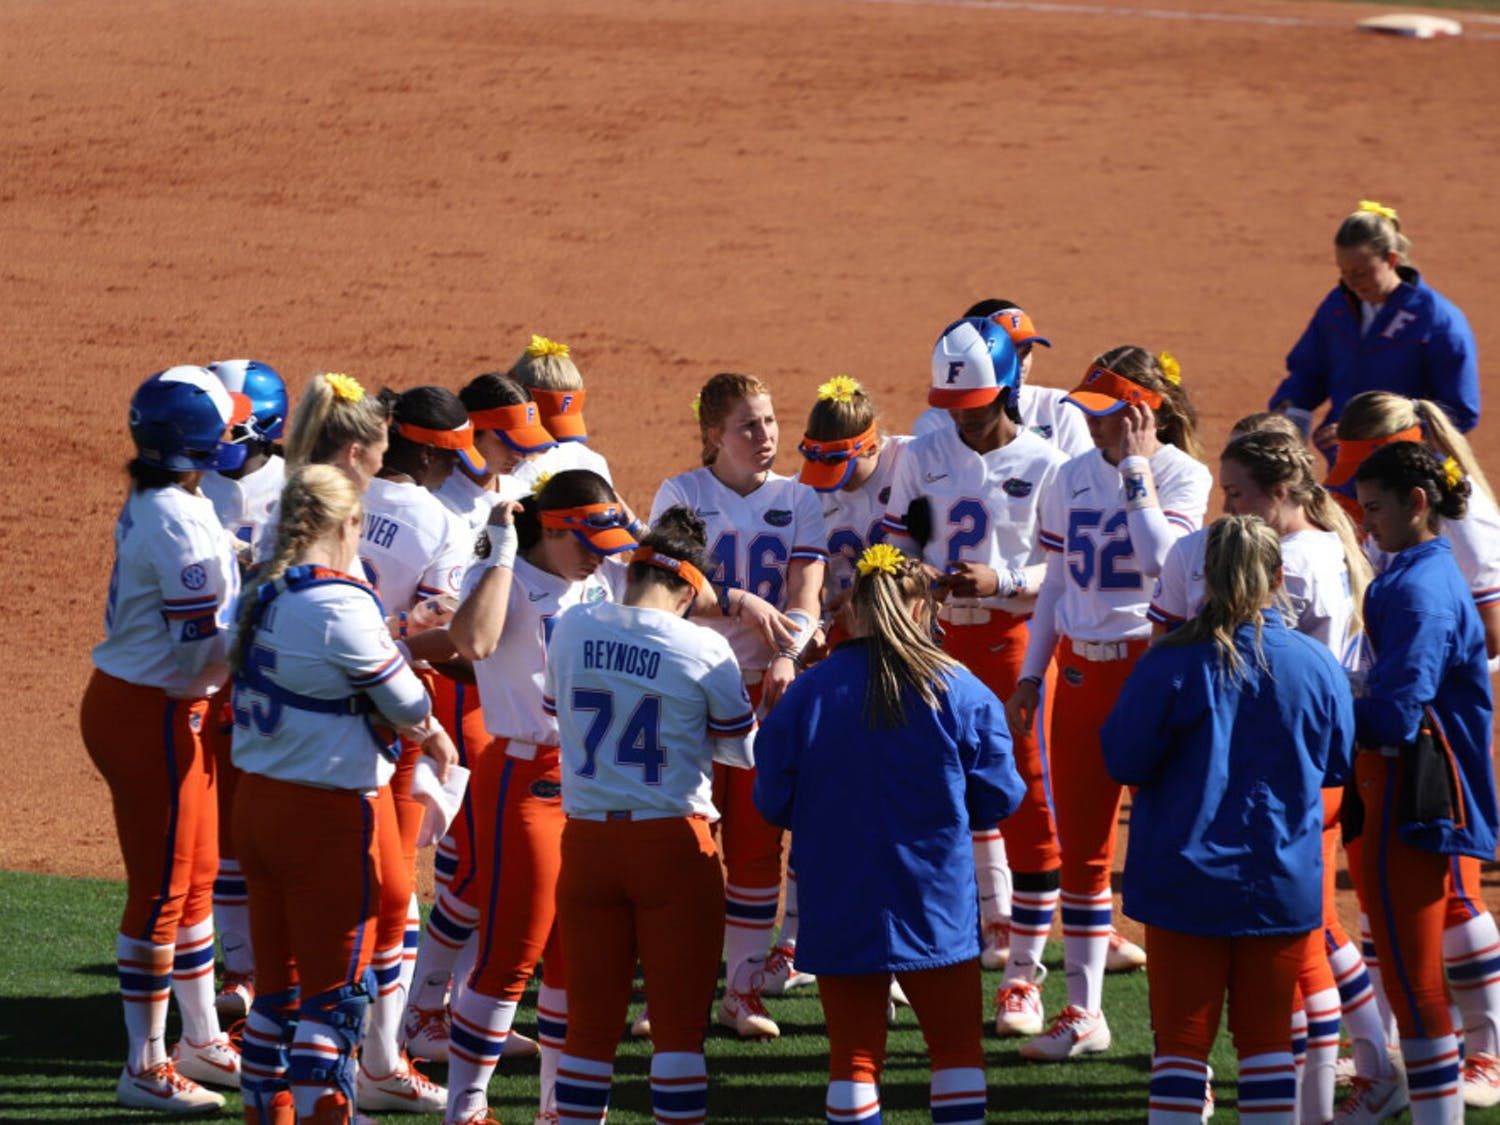 Florida softball team before its series against the Ragin' Cajun's this year. Lorenz will return to the program this year as a volunteer assistant coach.